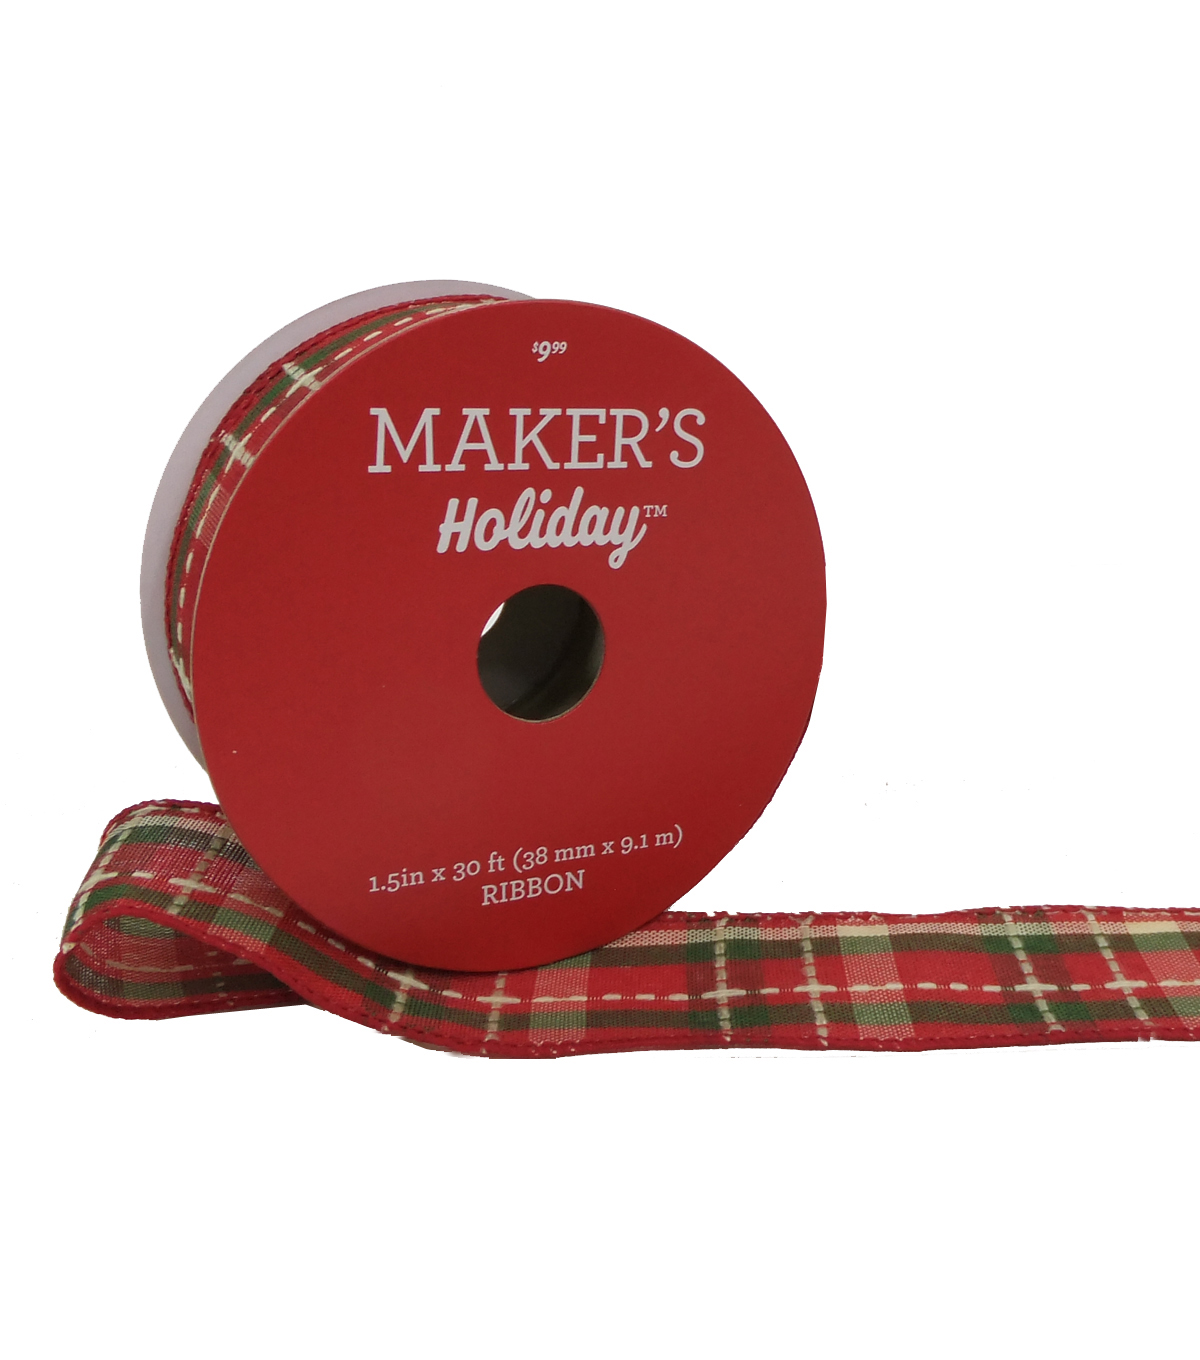 Maker's Holiday Christmas Ribbon 1.5''x30'-Red, Beige & Green Plaid